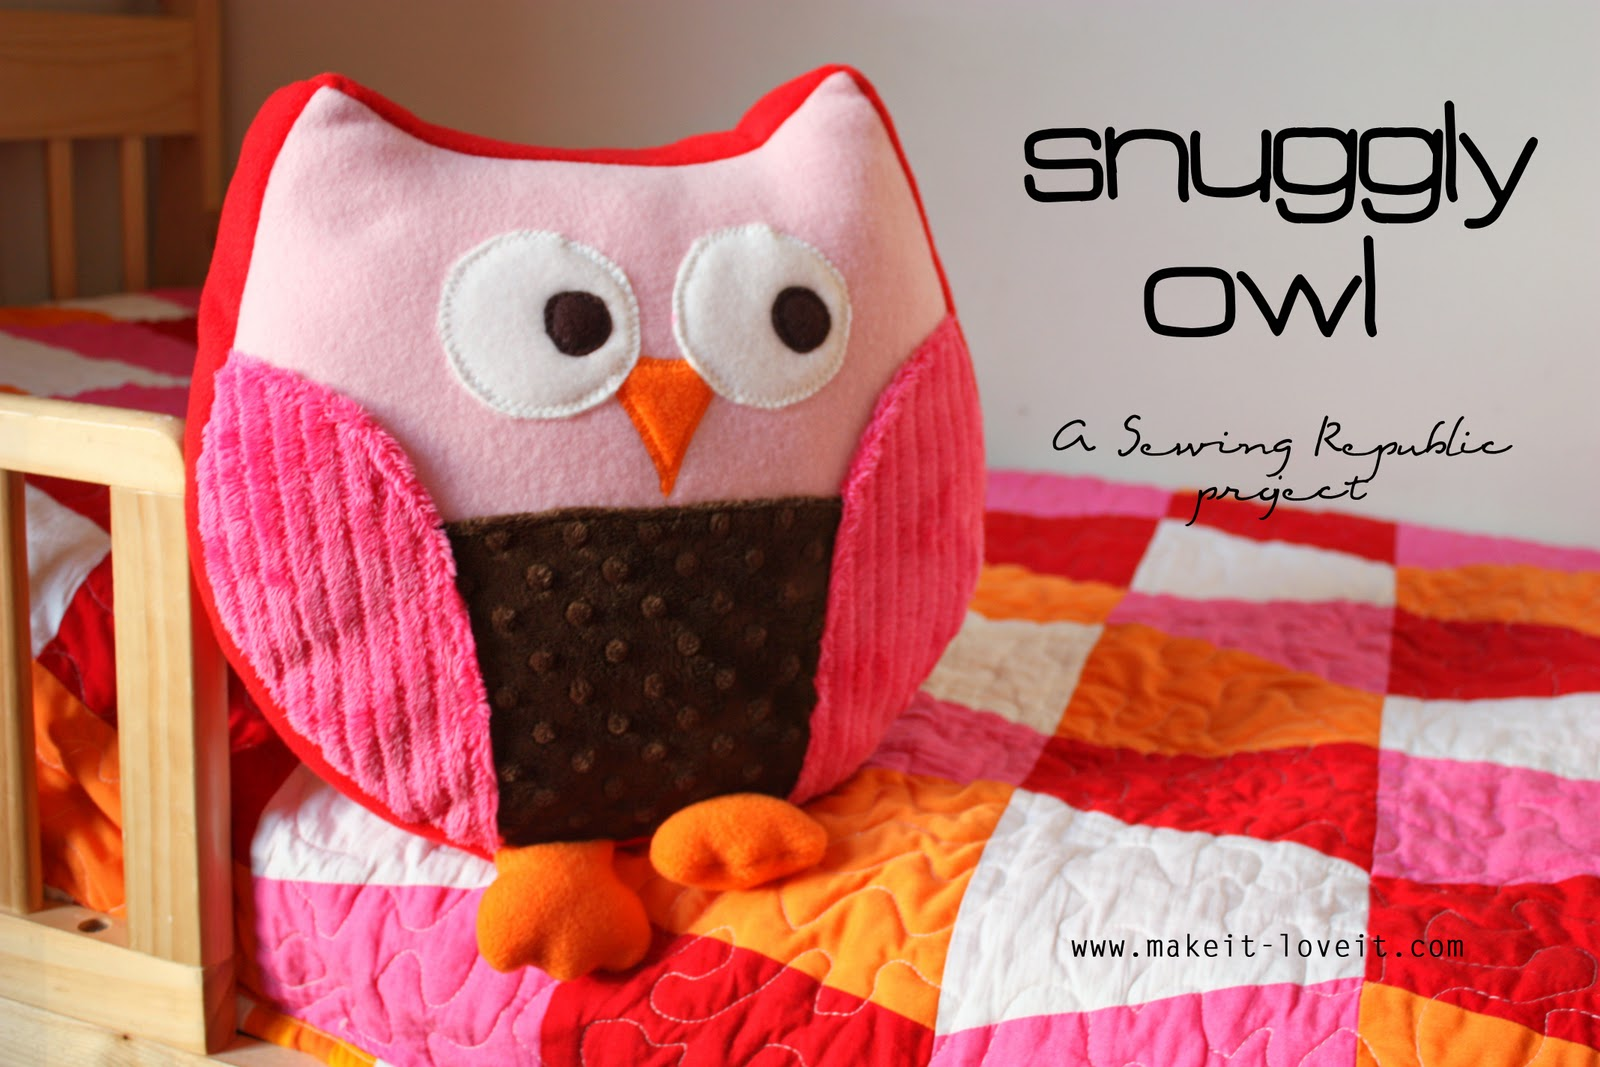 Stuff Owl Snuggly Owl For Sewing Republic Make It And Love It